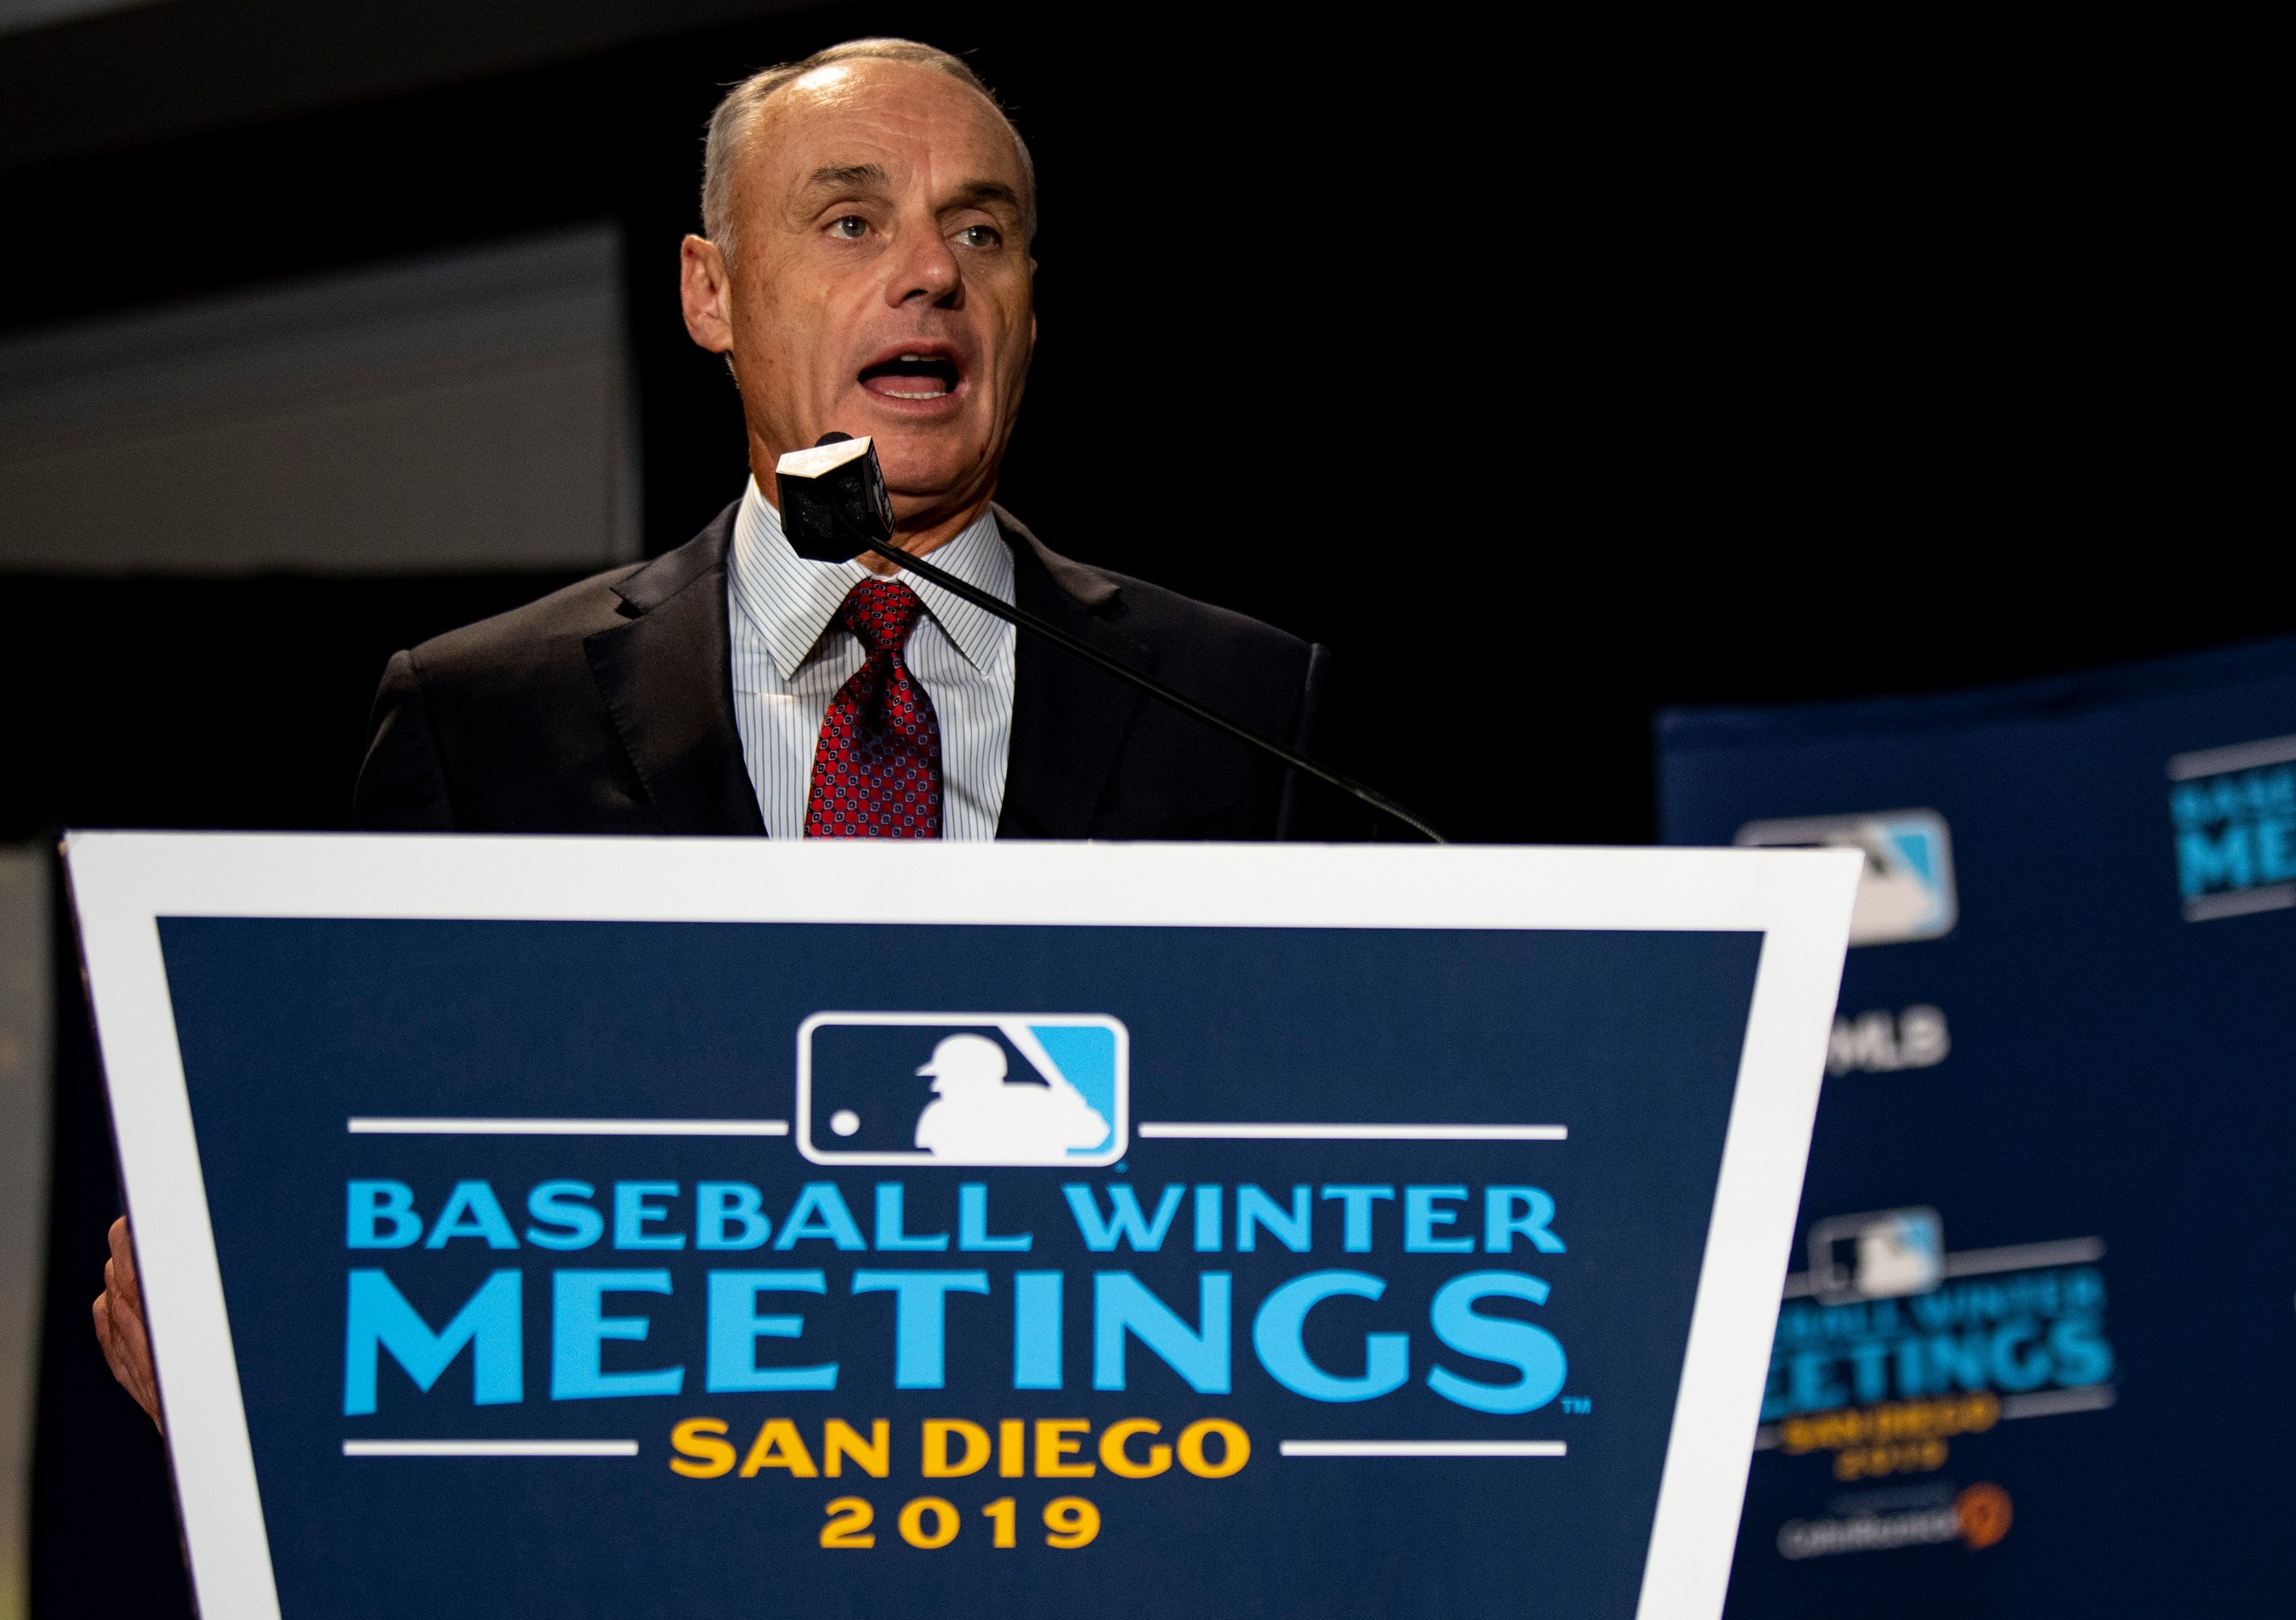 Rob-manfred-billie-weiss-boston-red-sox-getty-images-1